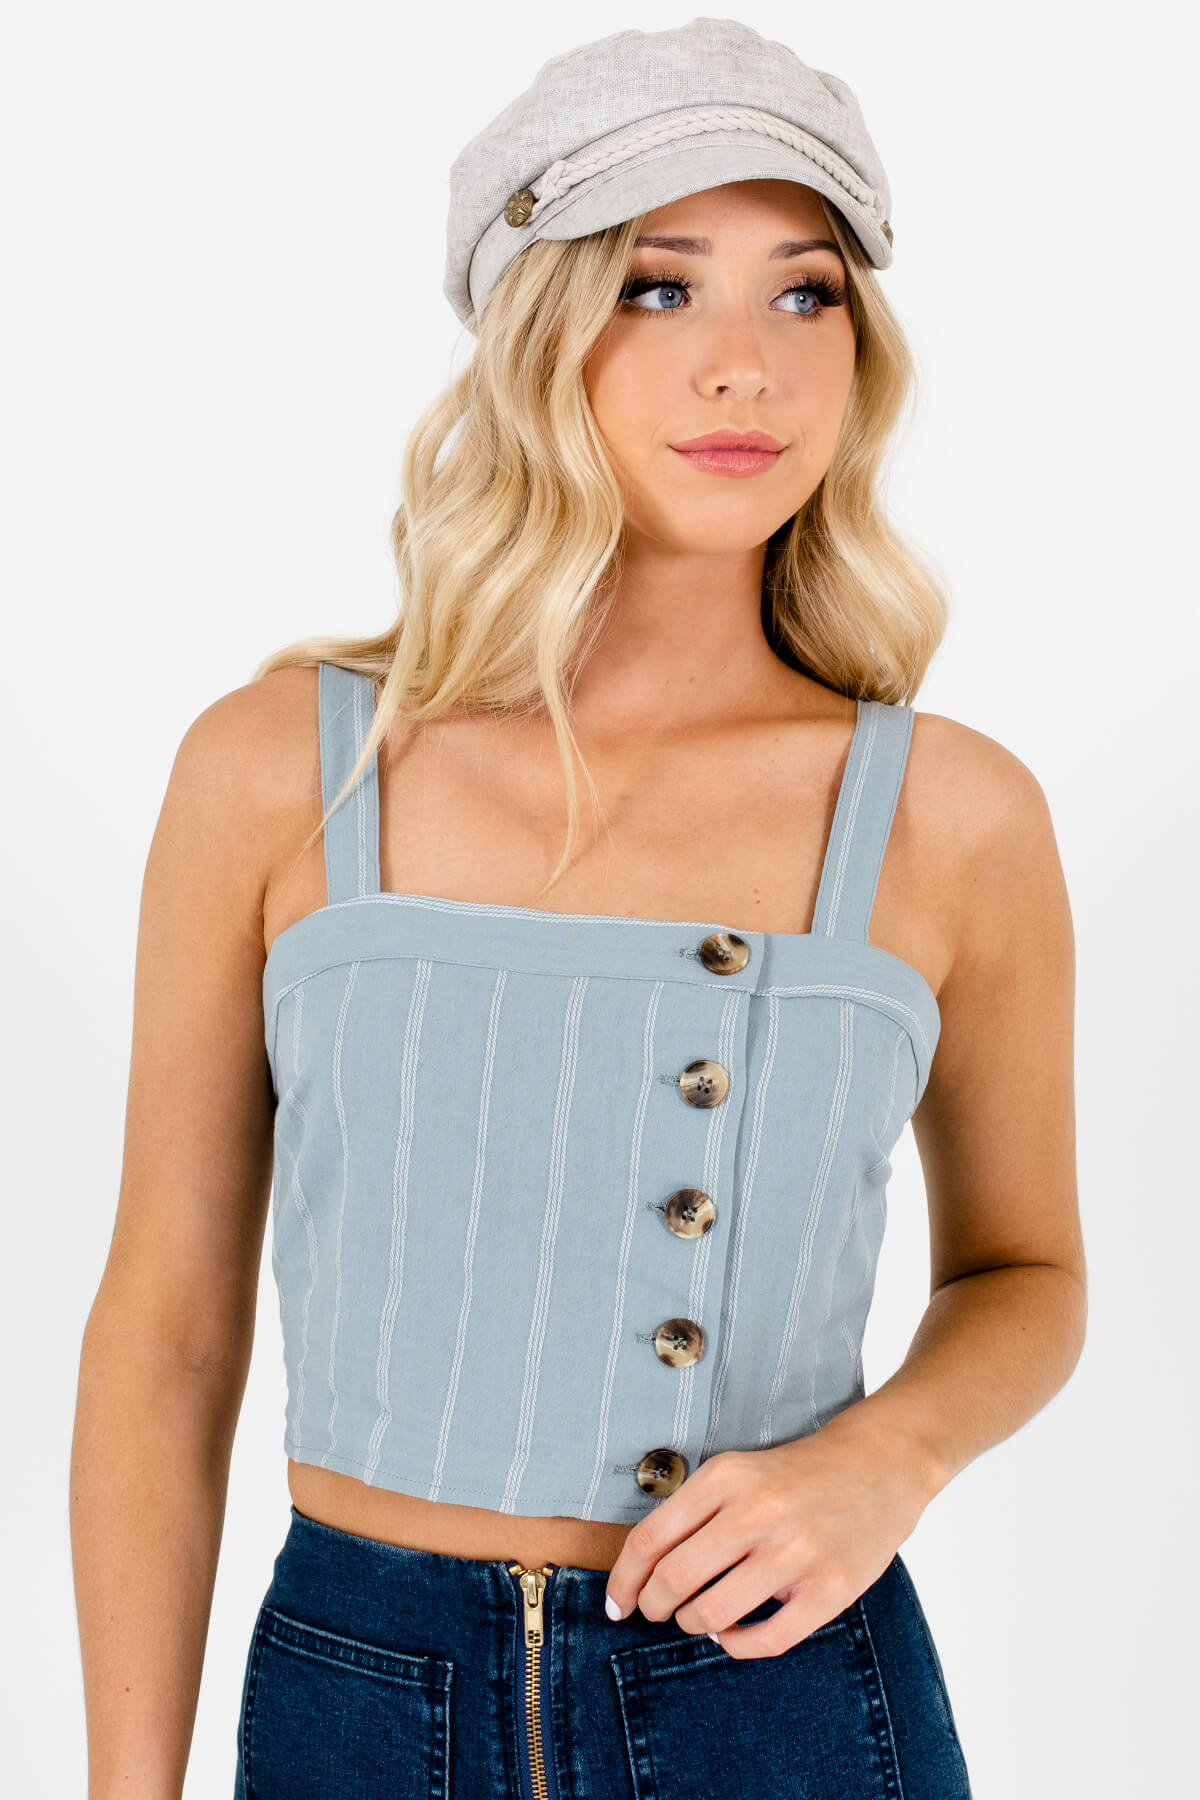 Light Blue and White Striped Boutique Tank Tops for Women